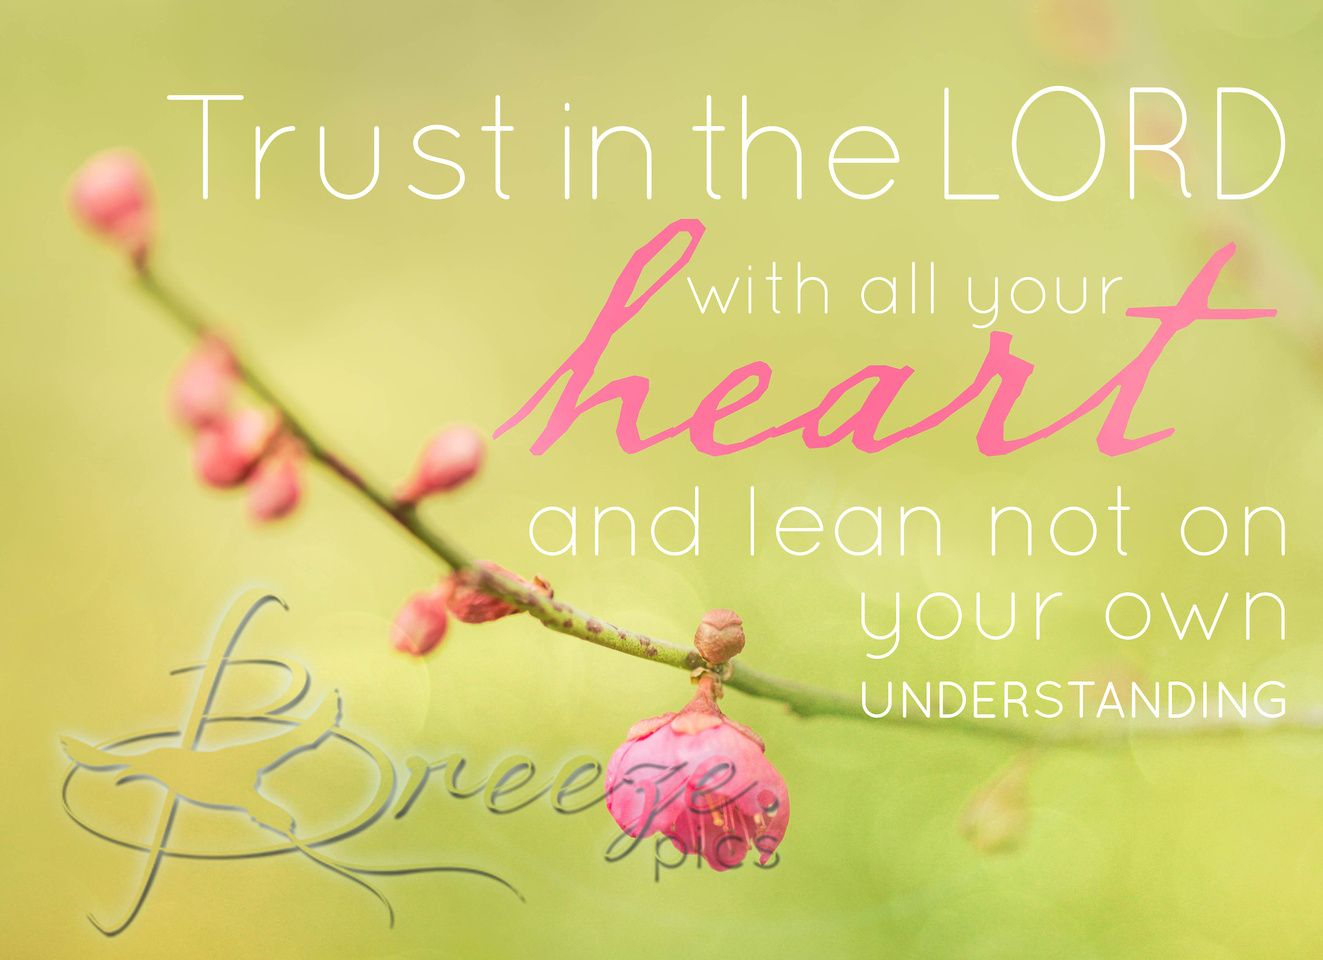 Trust in the lord with all your heart and lean not on your own